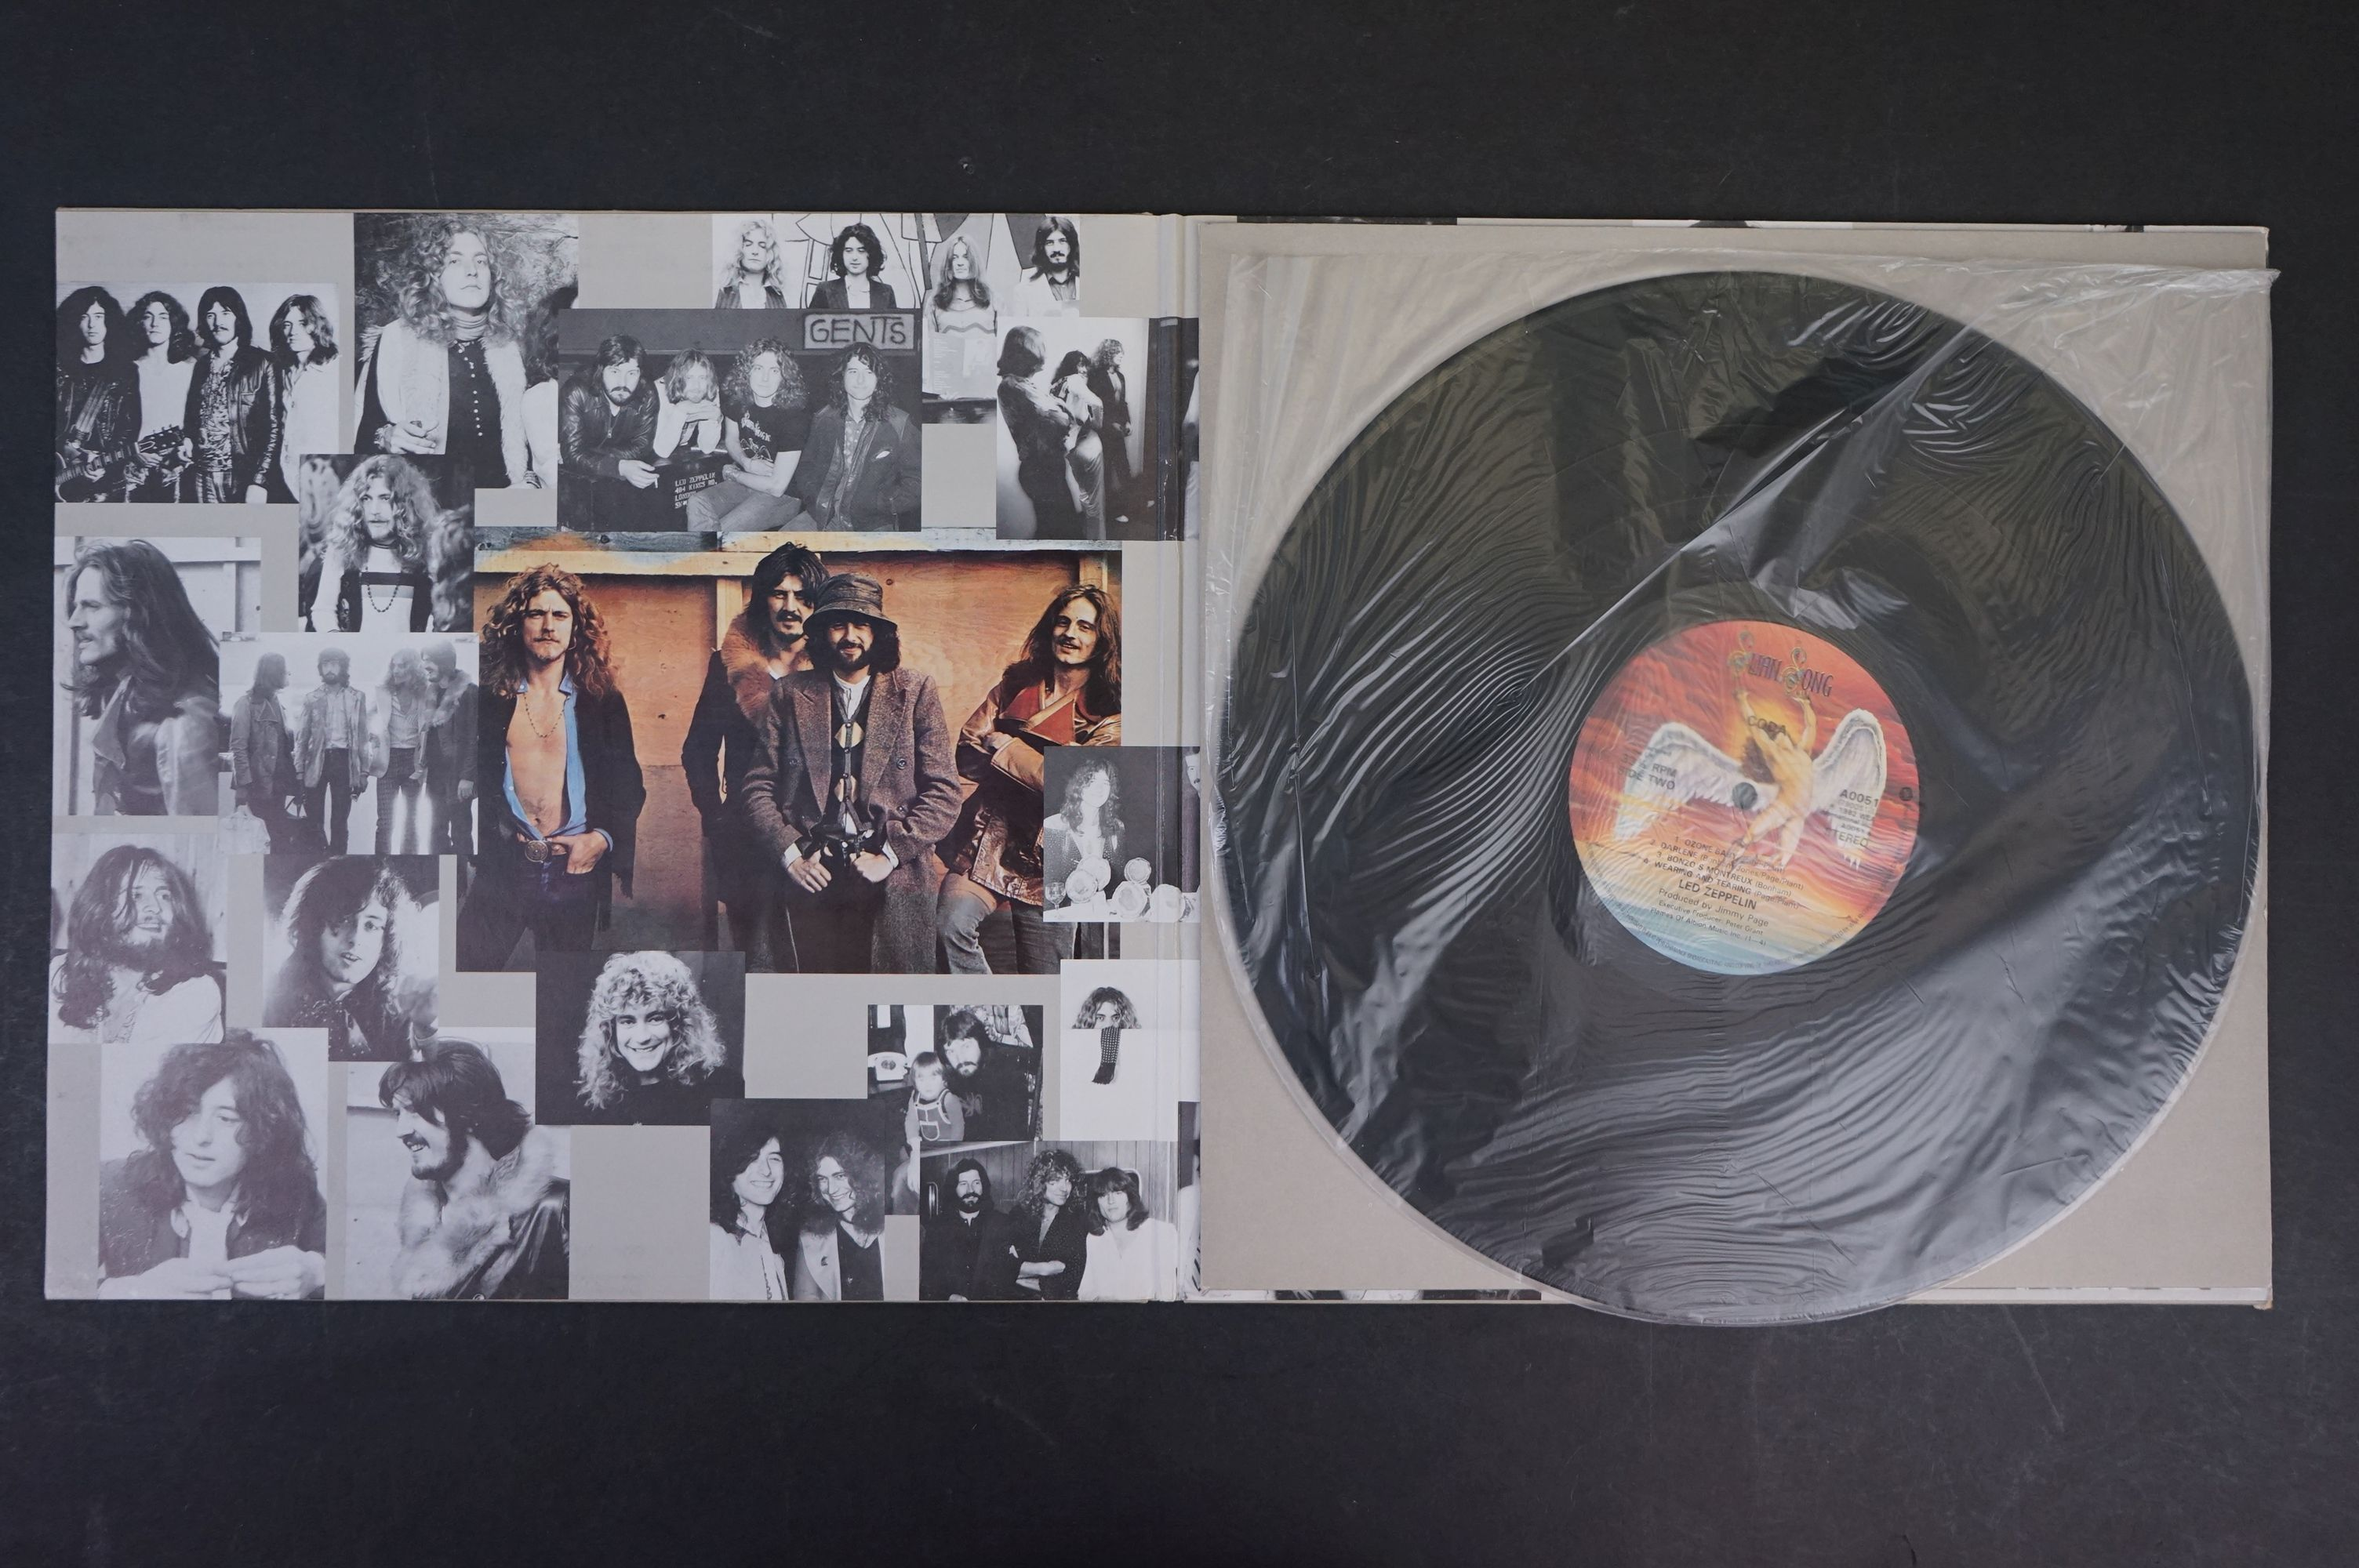 Vinyl - Six Led Zeppelin LPs to include In Through the Outdoor (cover D) SSK59410, Coda 790051, 2 - Image 7 of 17